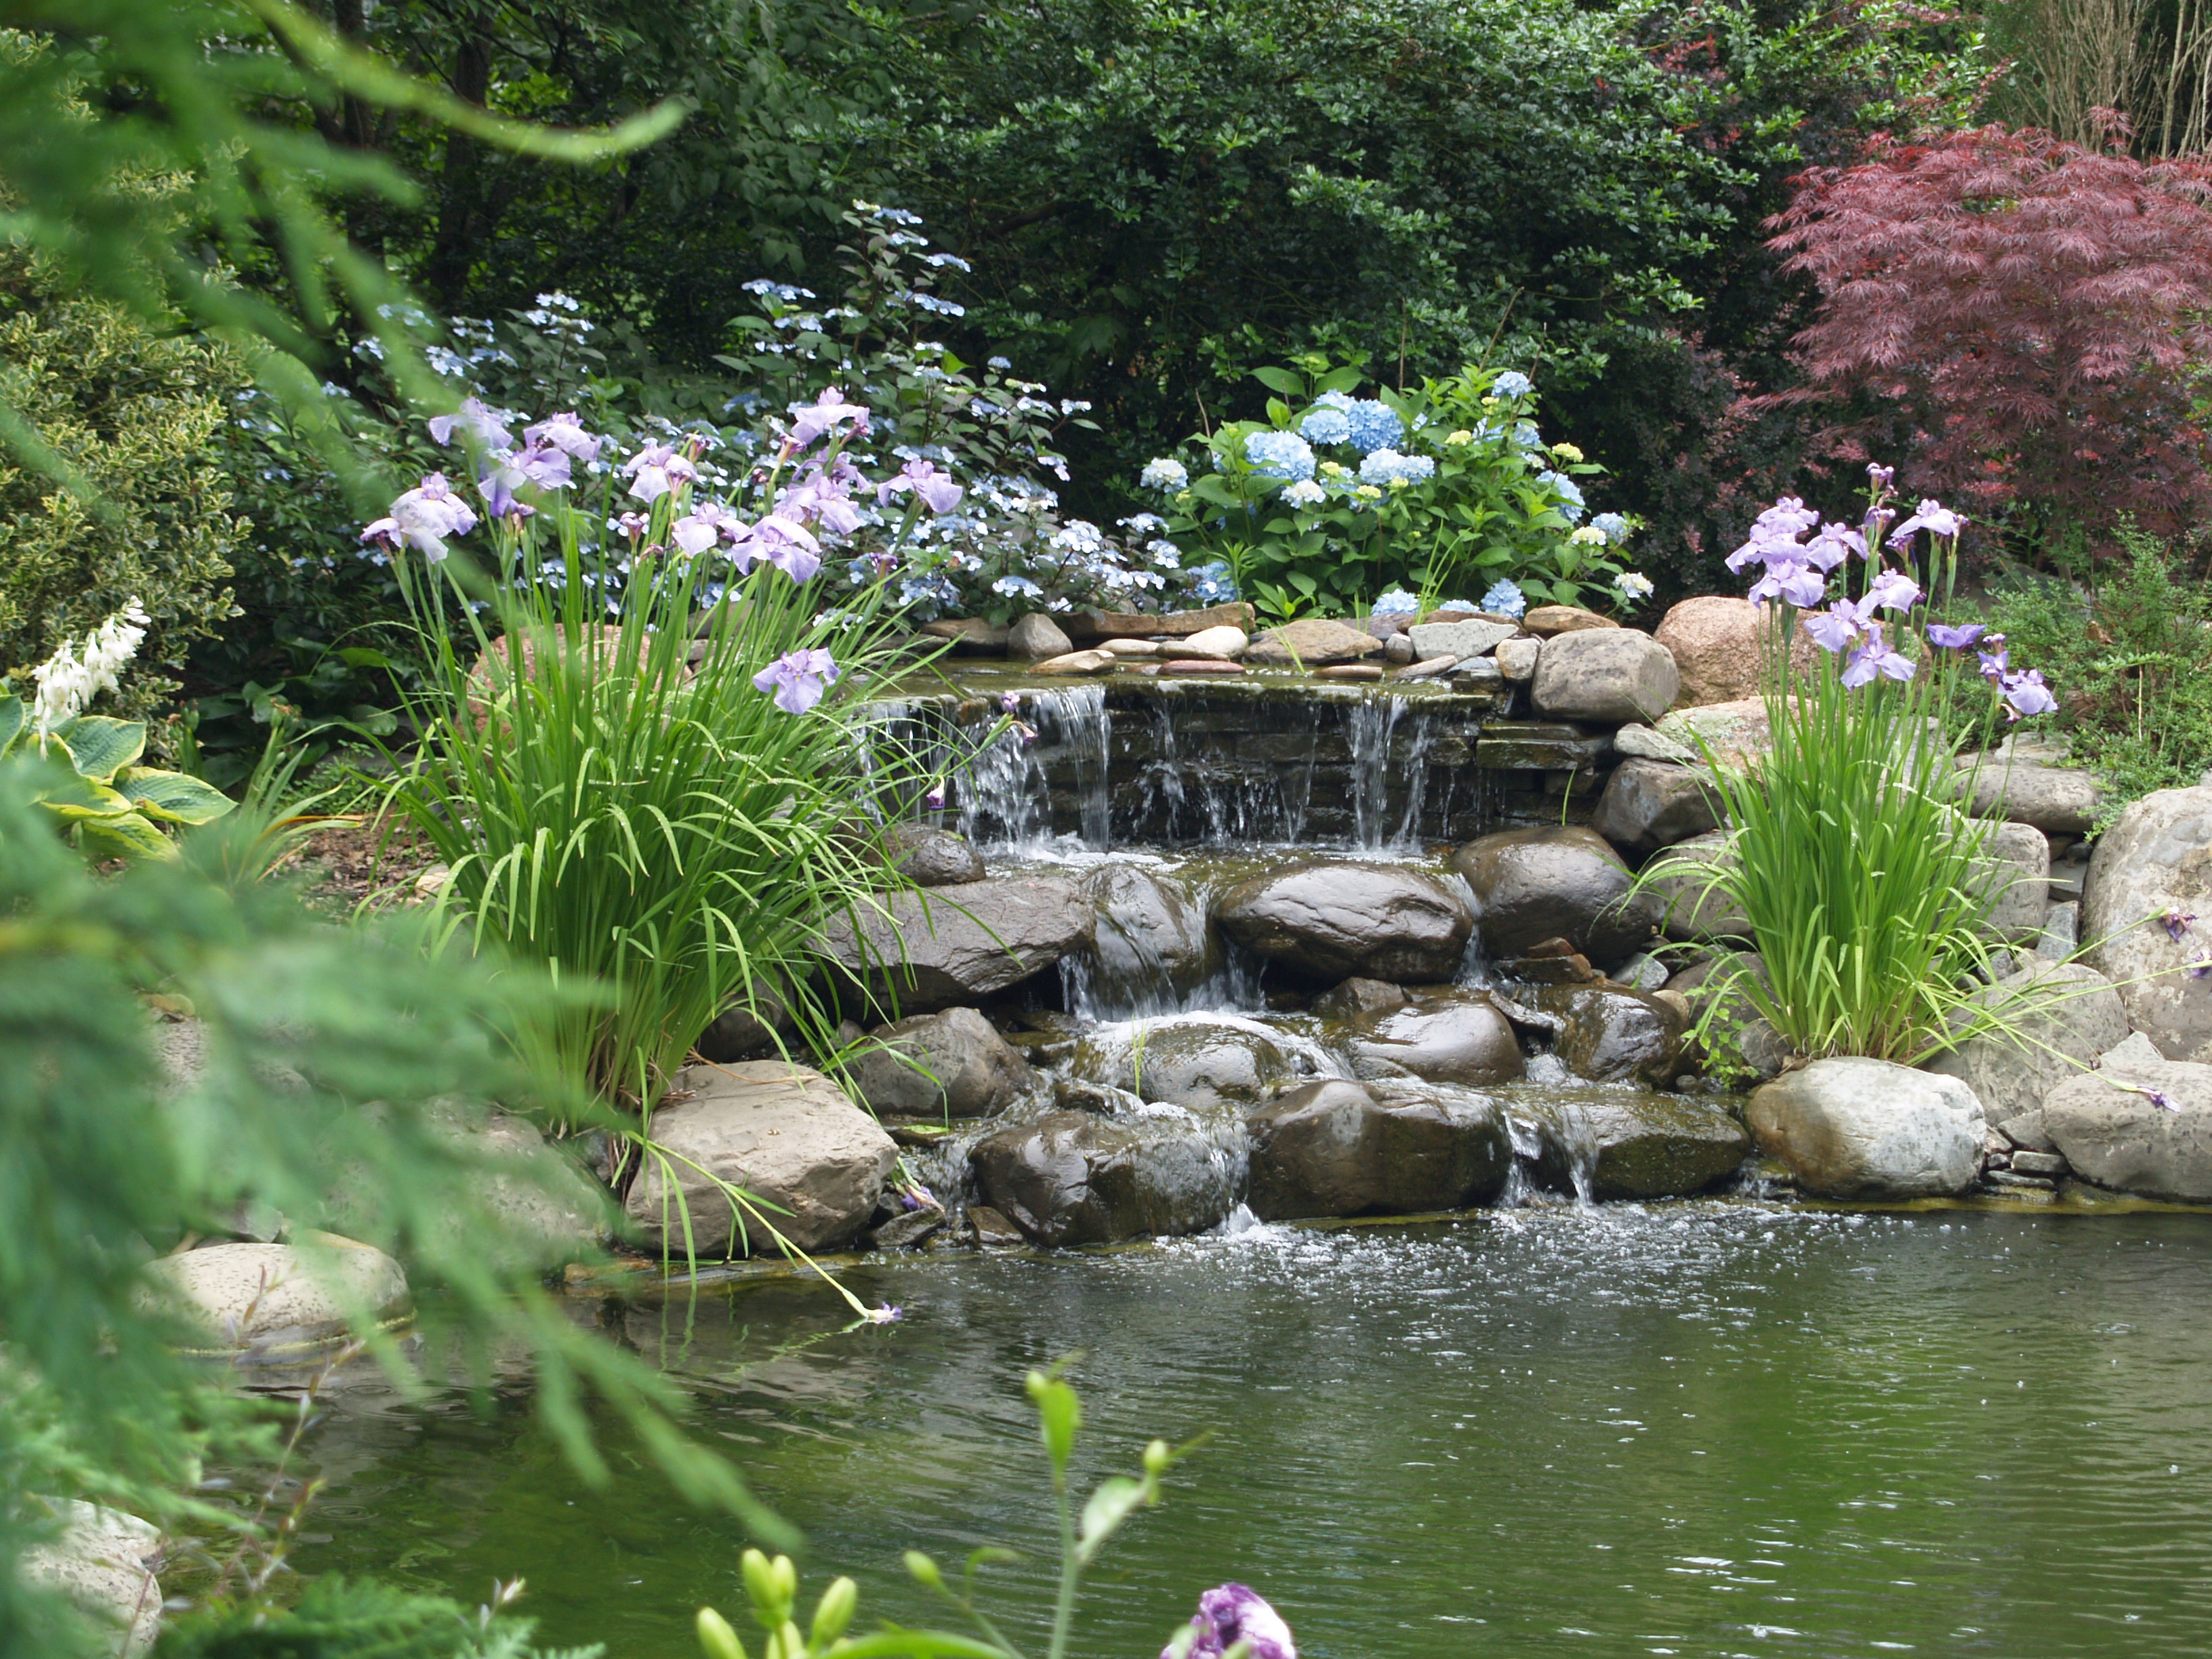 Garden ponds are a delight ramblin 39 through dave 39 s garden for Pond with plants